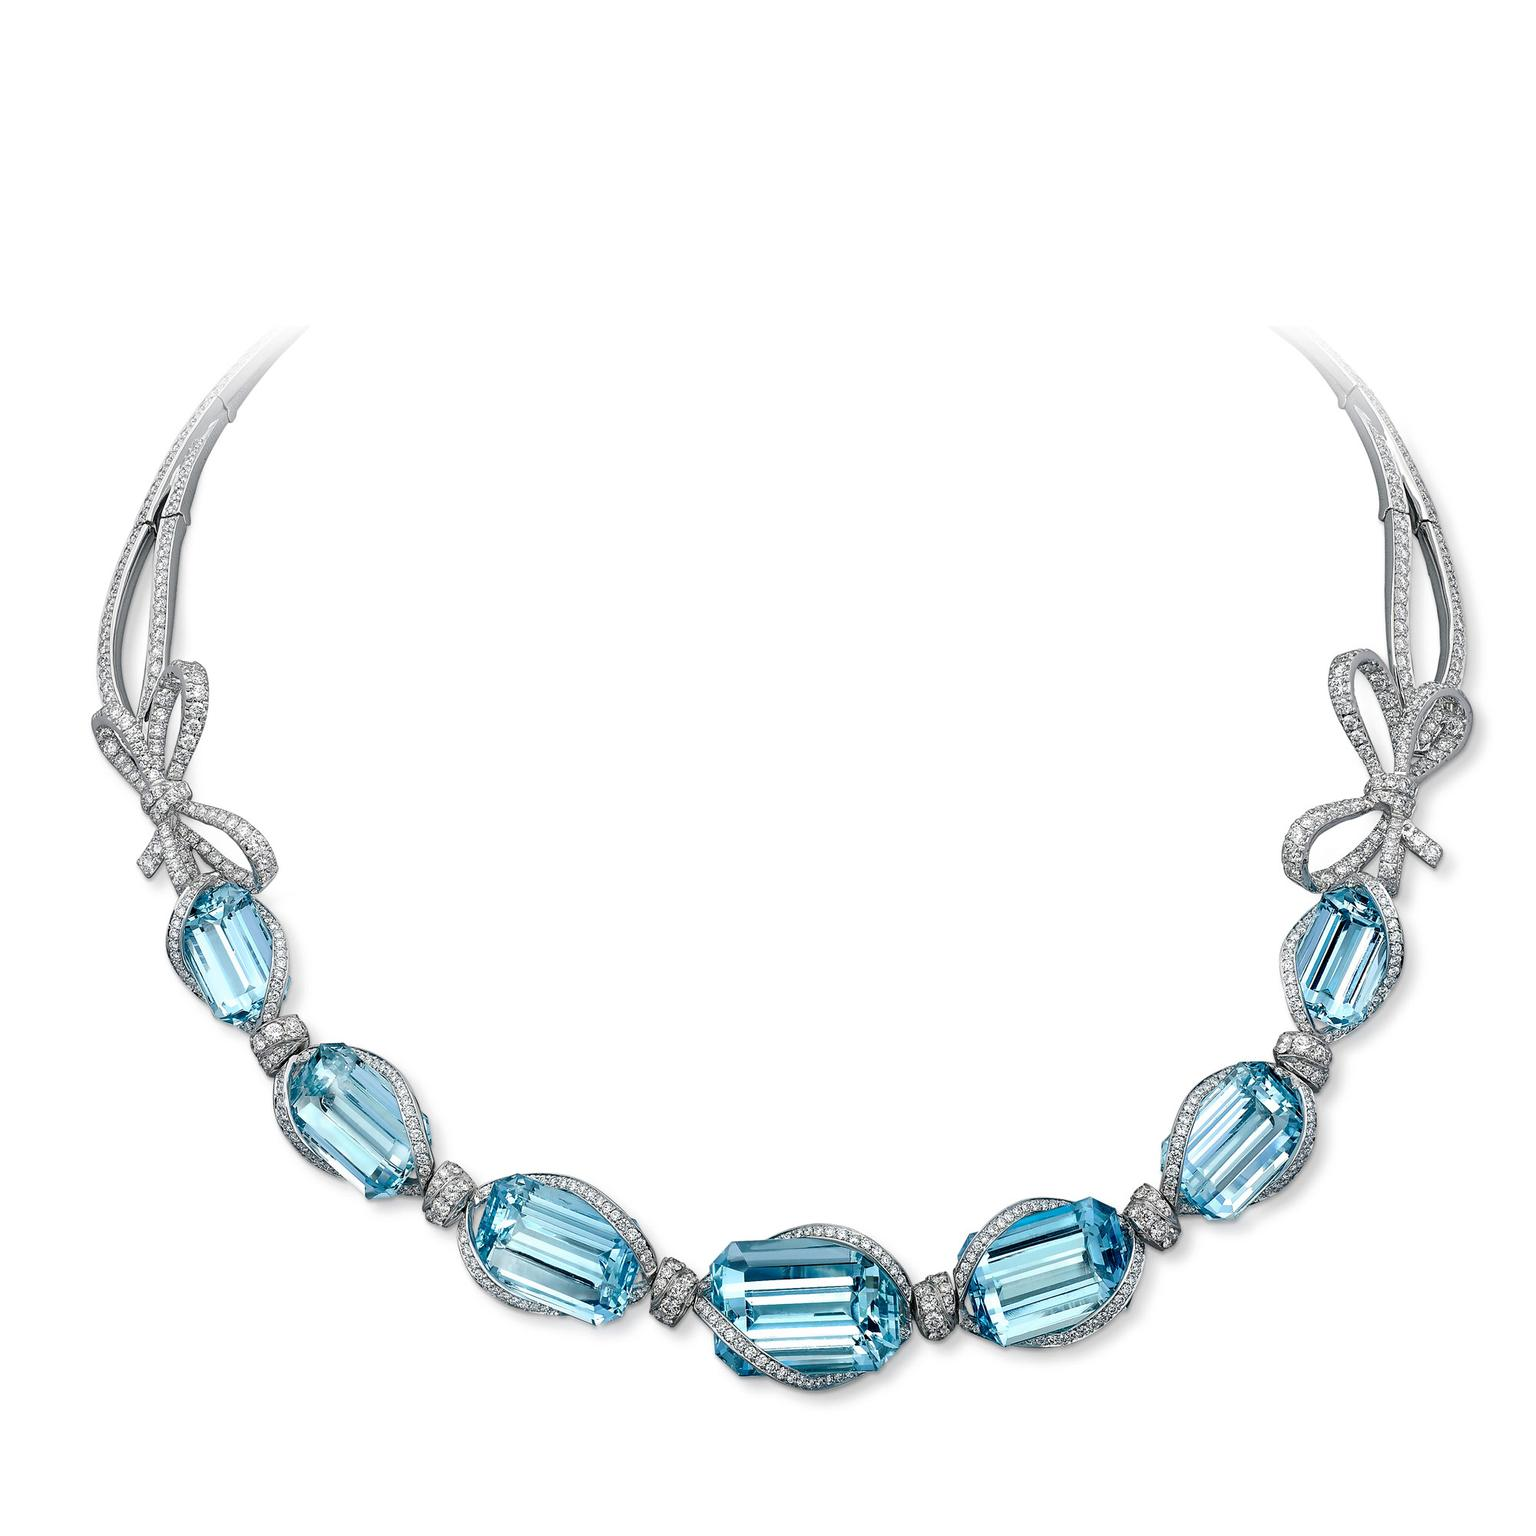 VANLELES aquamarine and diamond necklace